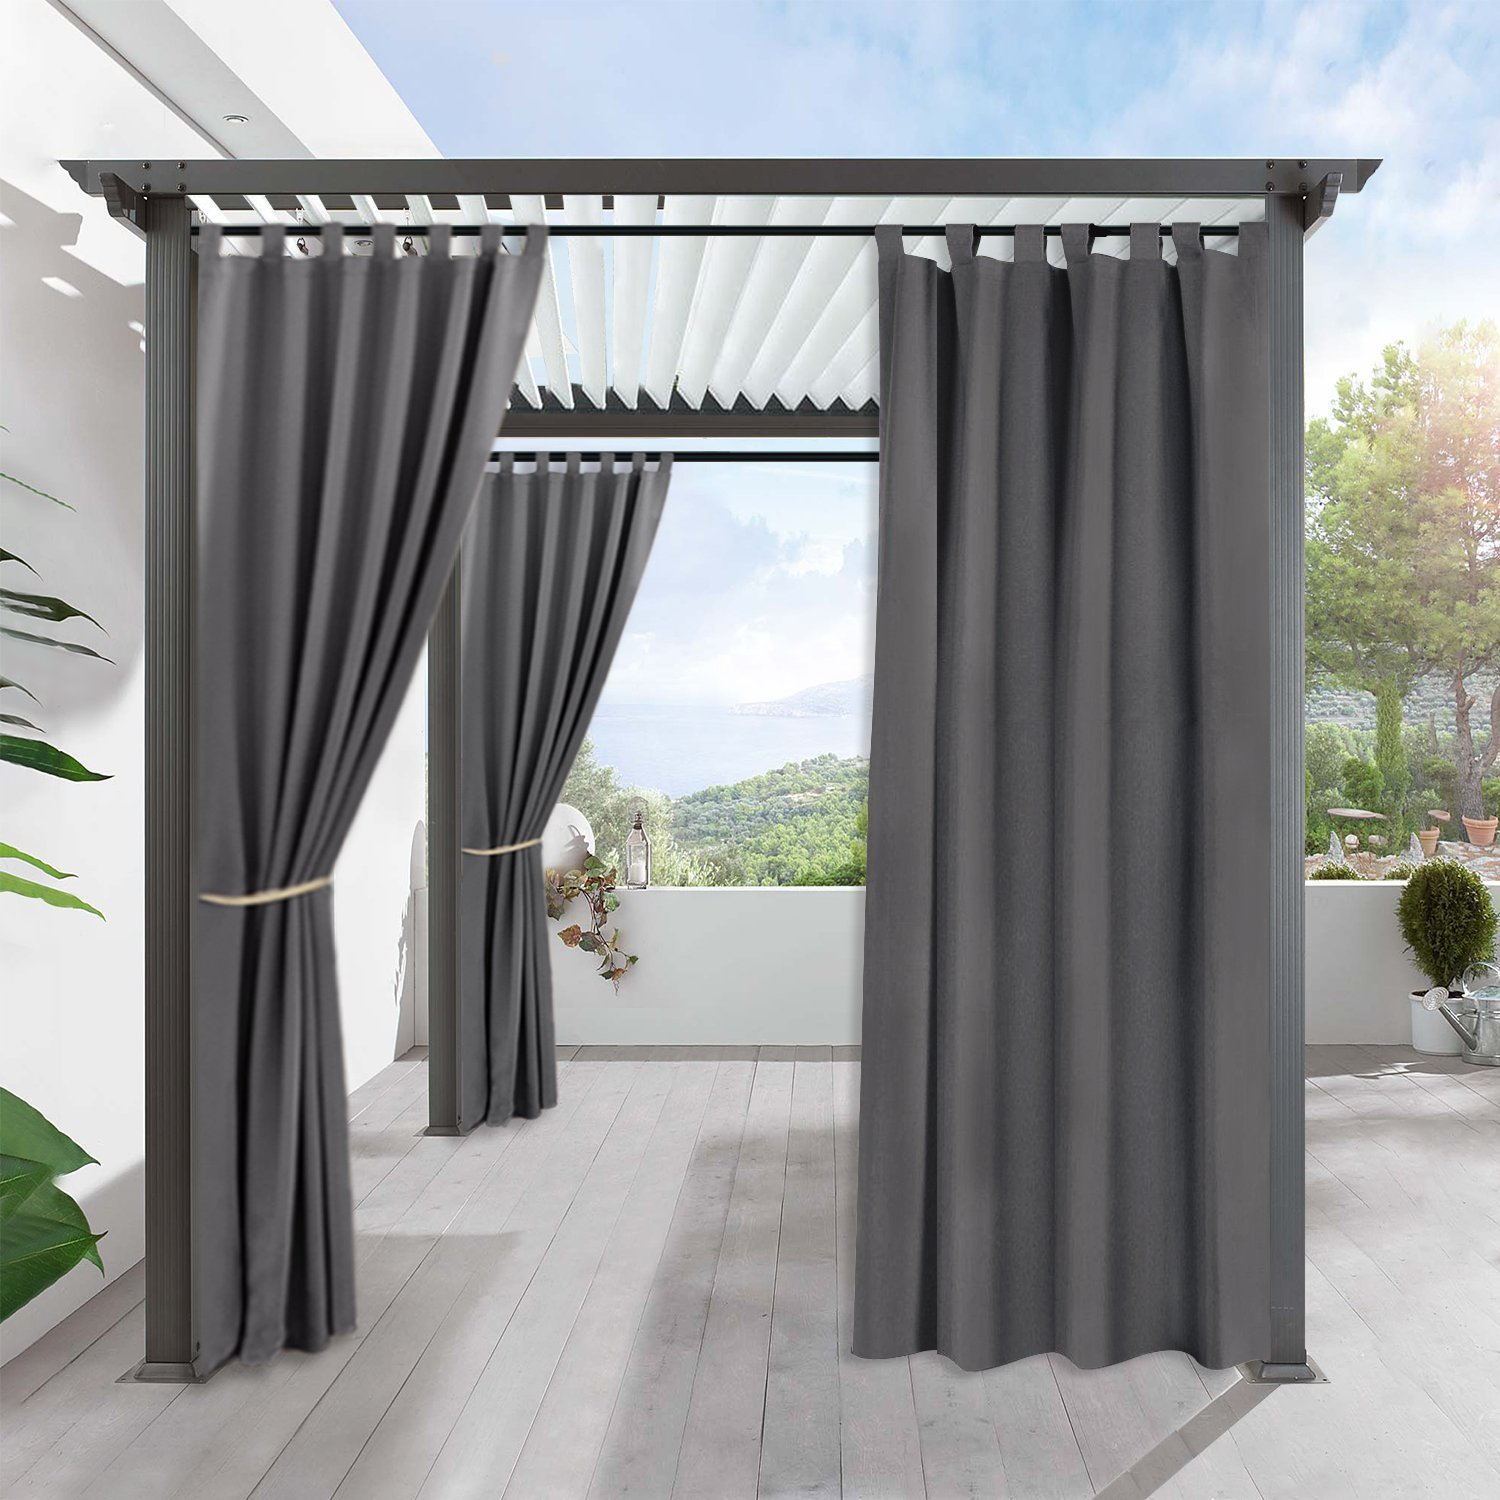 ideas for patio outdoor diy curtain home curtains design